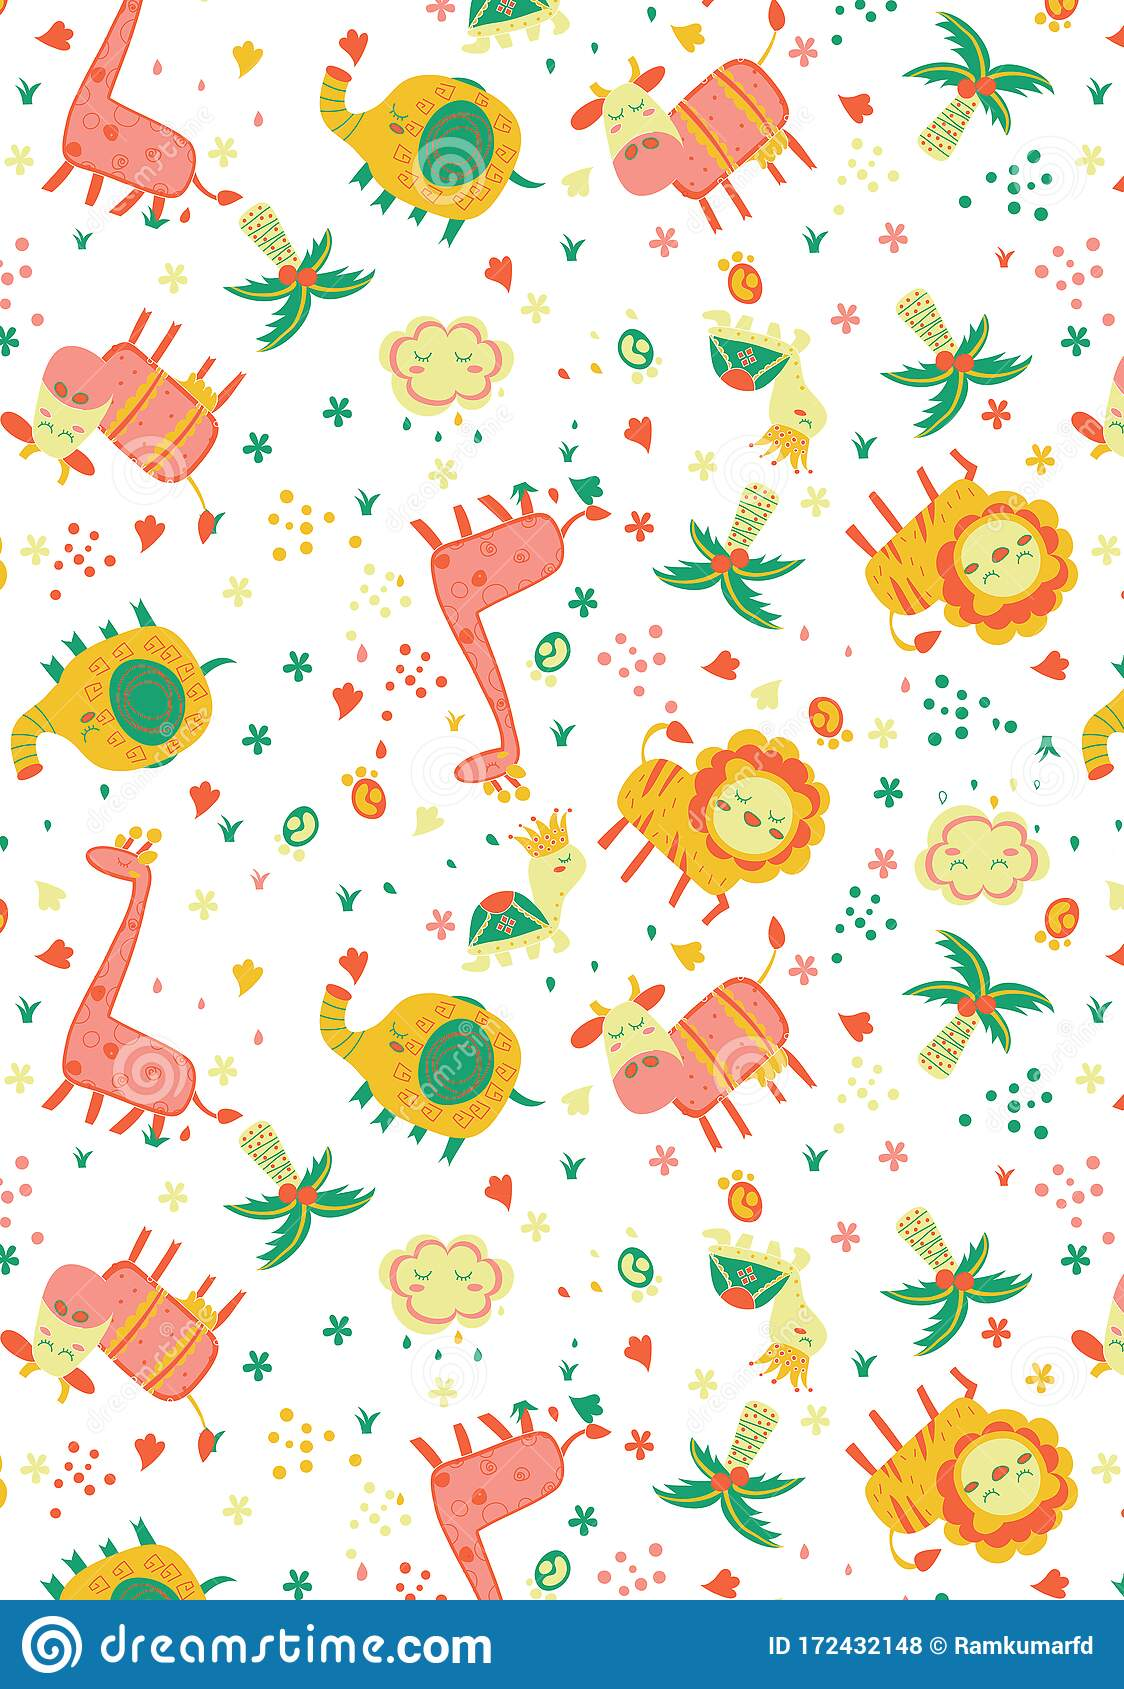 Jungle Animals Tribal Ethnic Repeated Seamless Pattern For